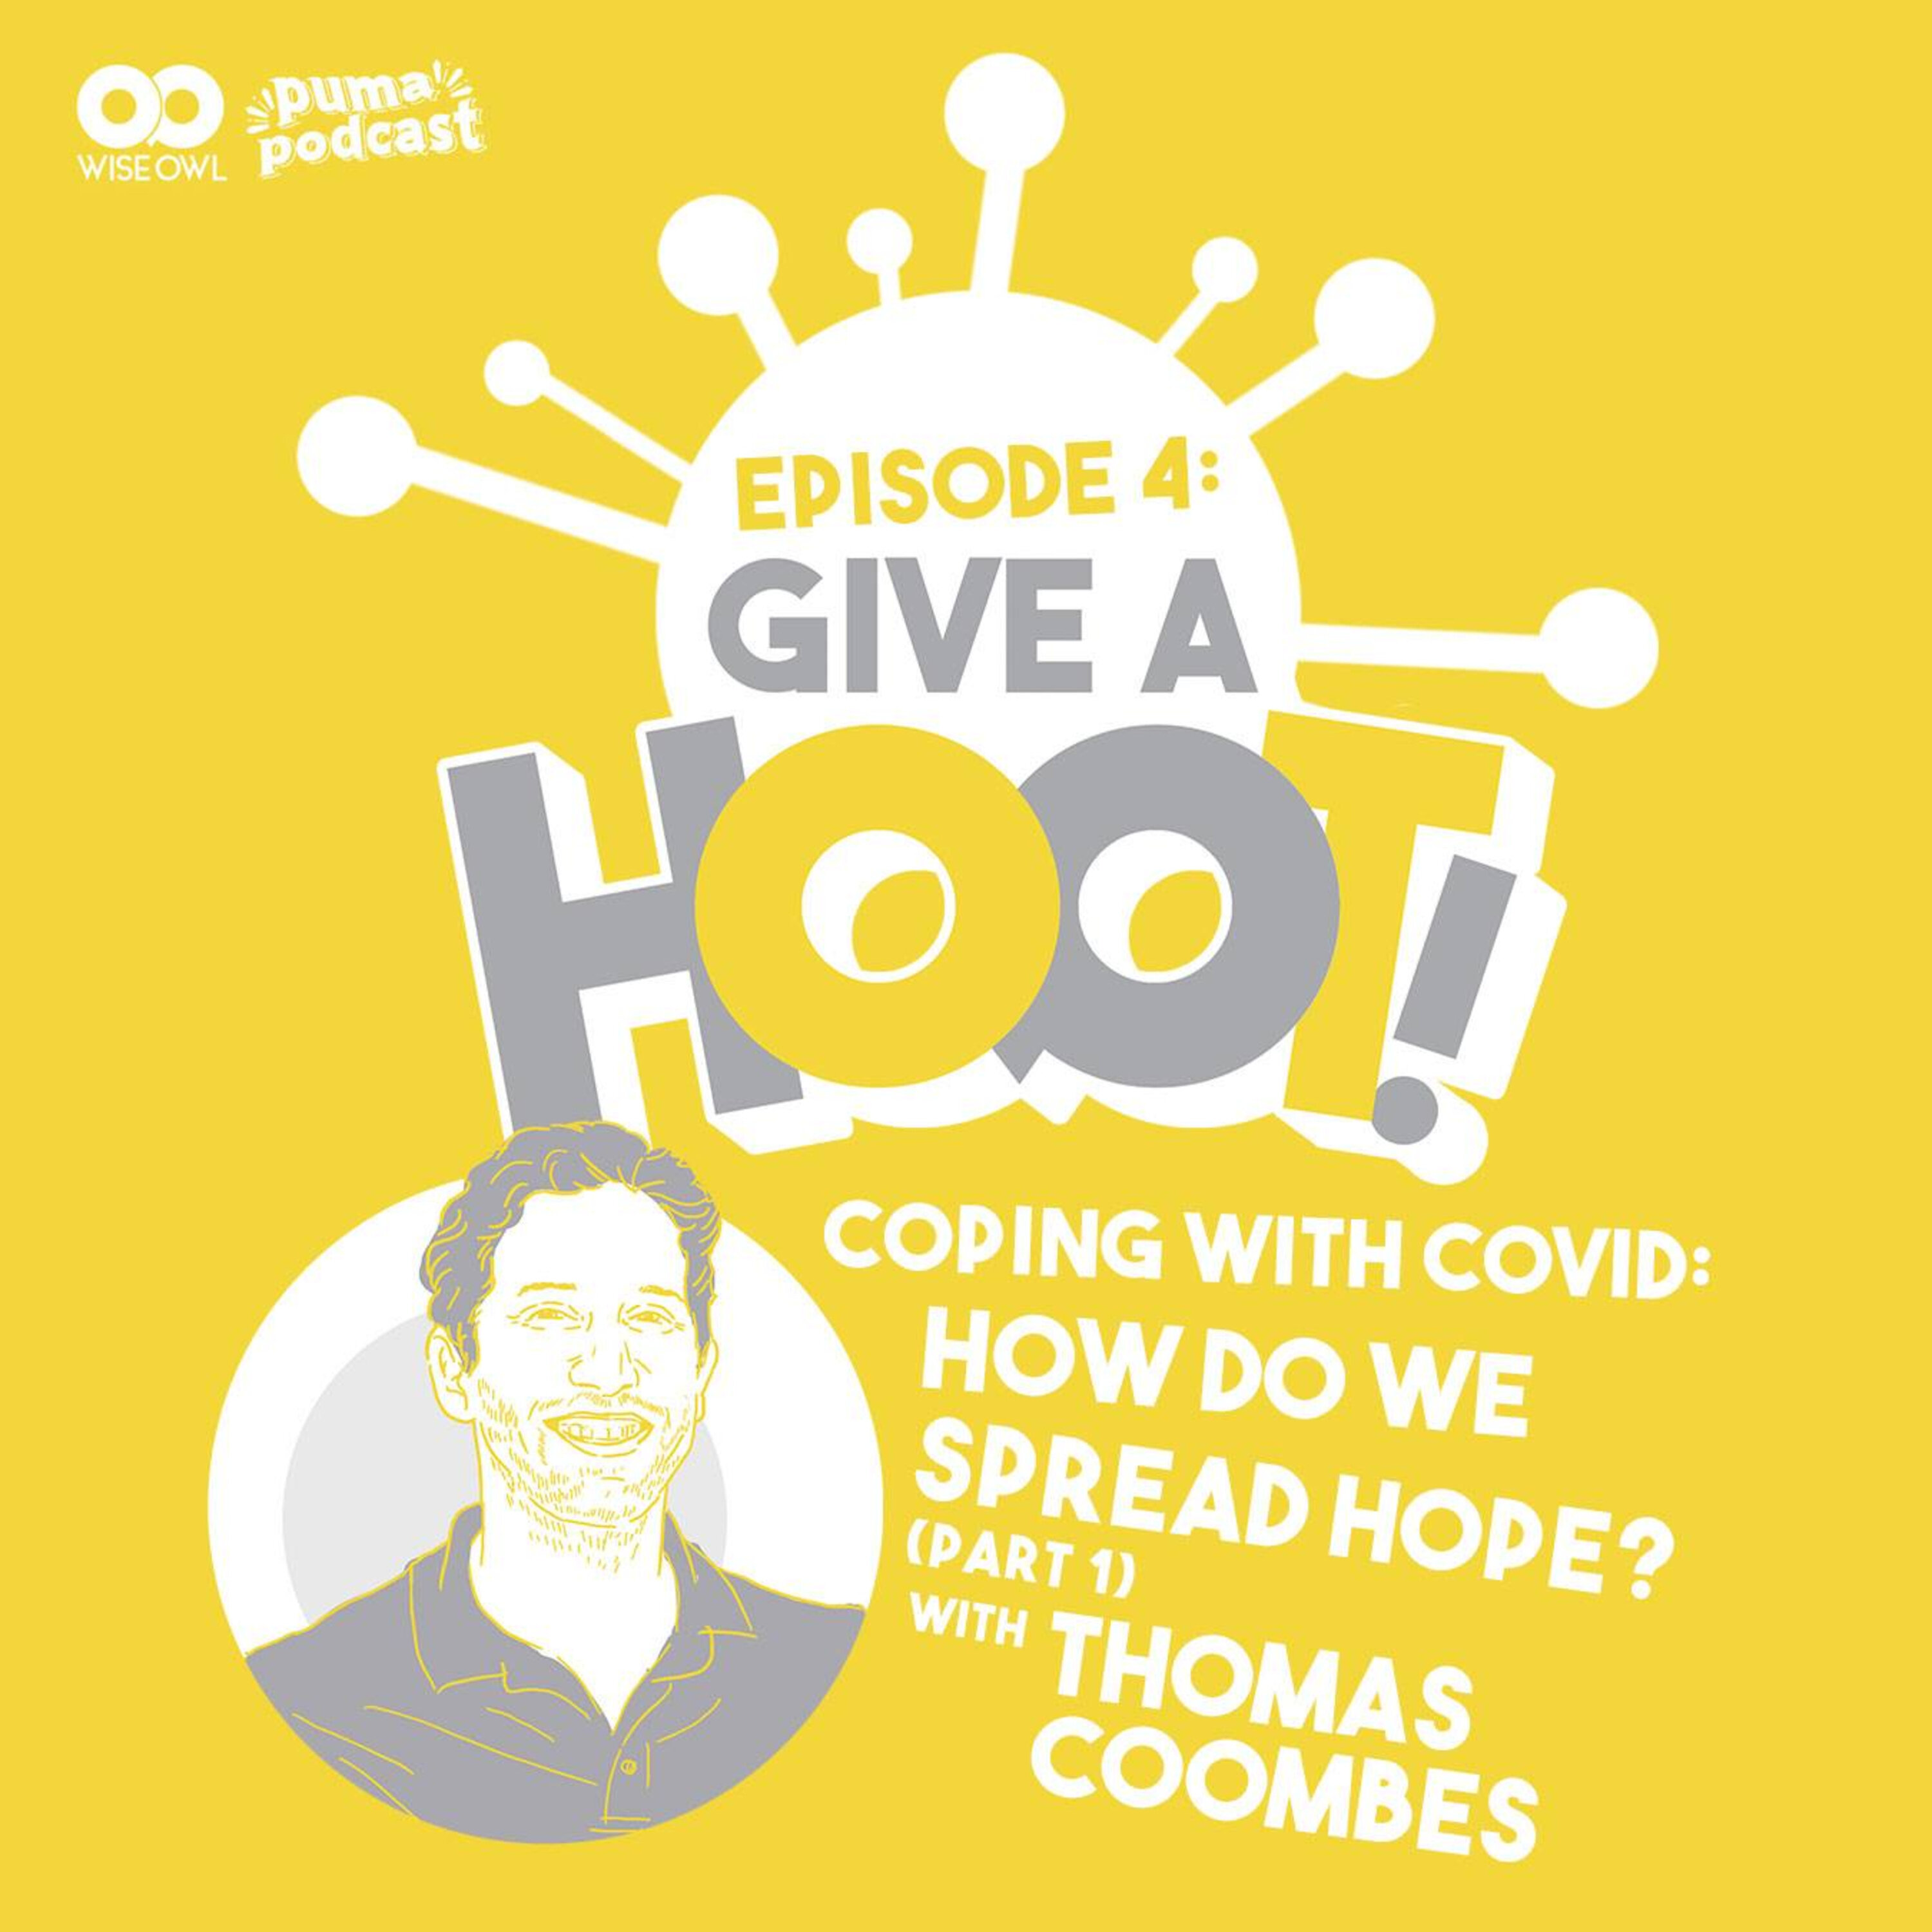 Give A Hoot Special Episode: Coping with COVID - How do we spread hope? With Thomas Coombes (Part 1)